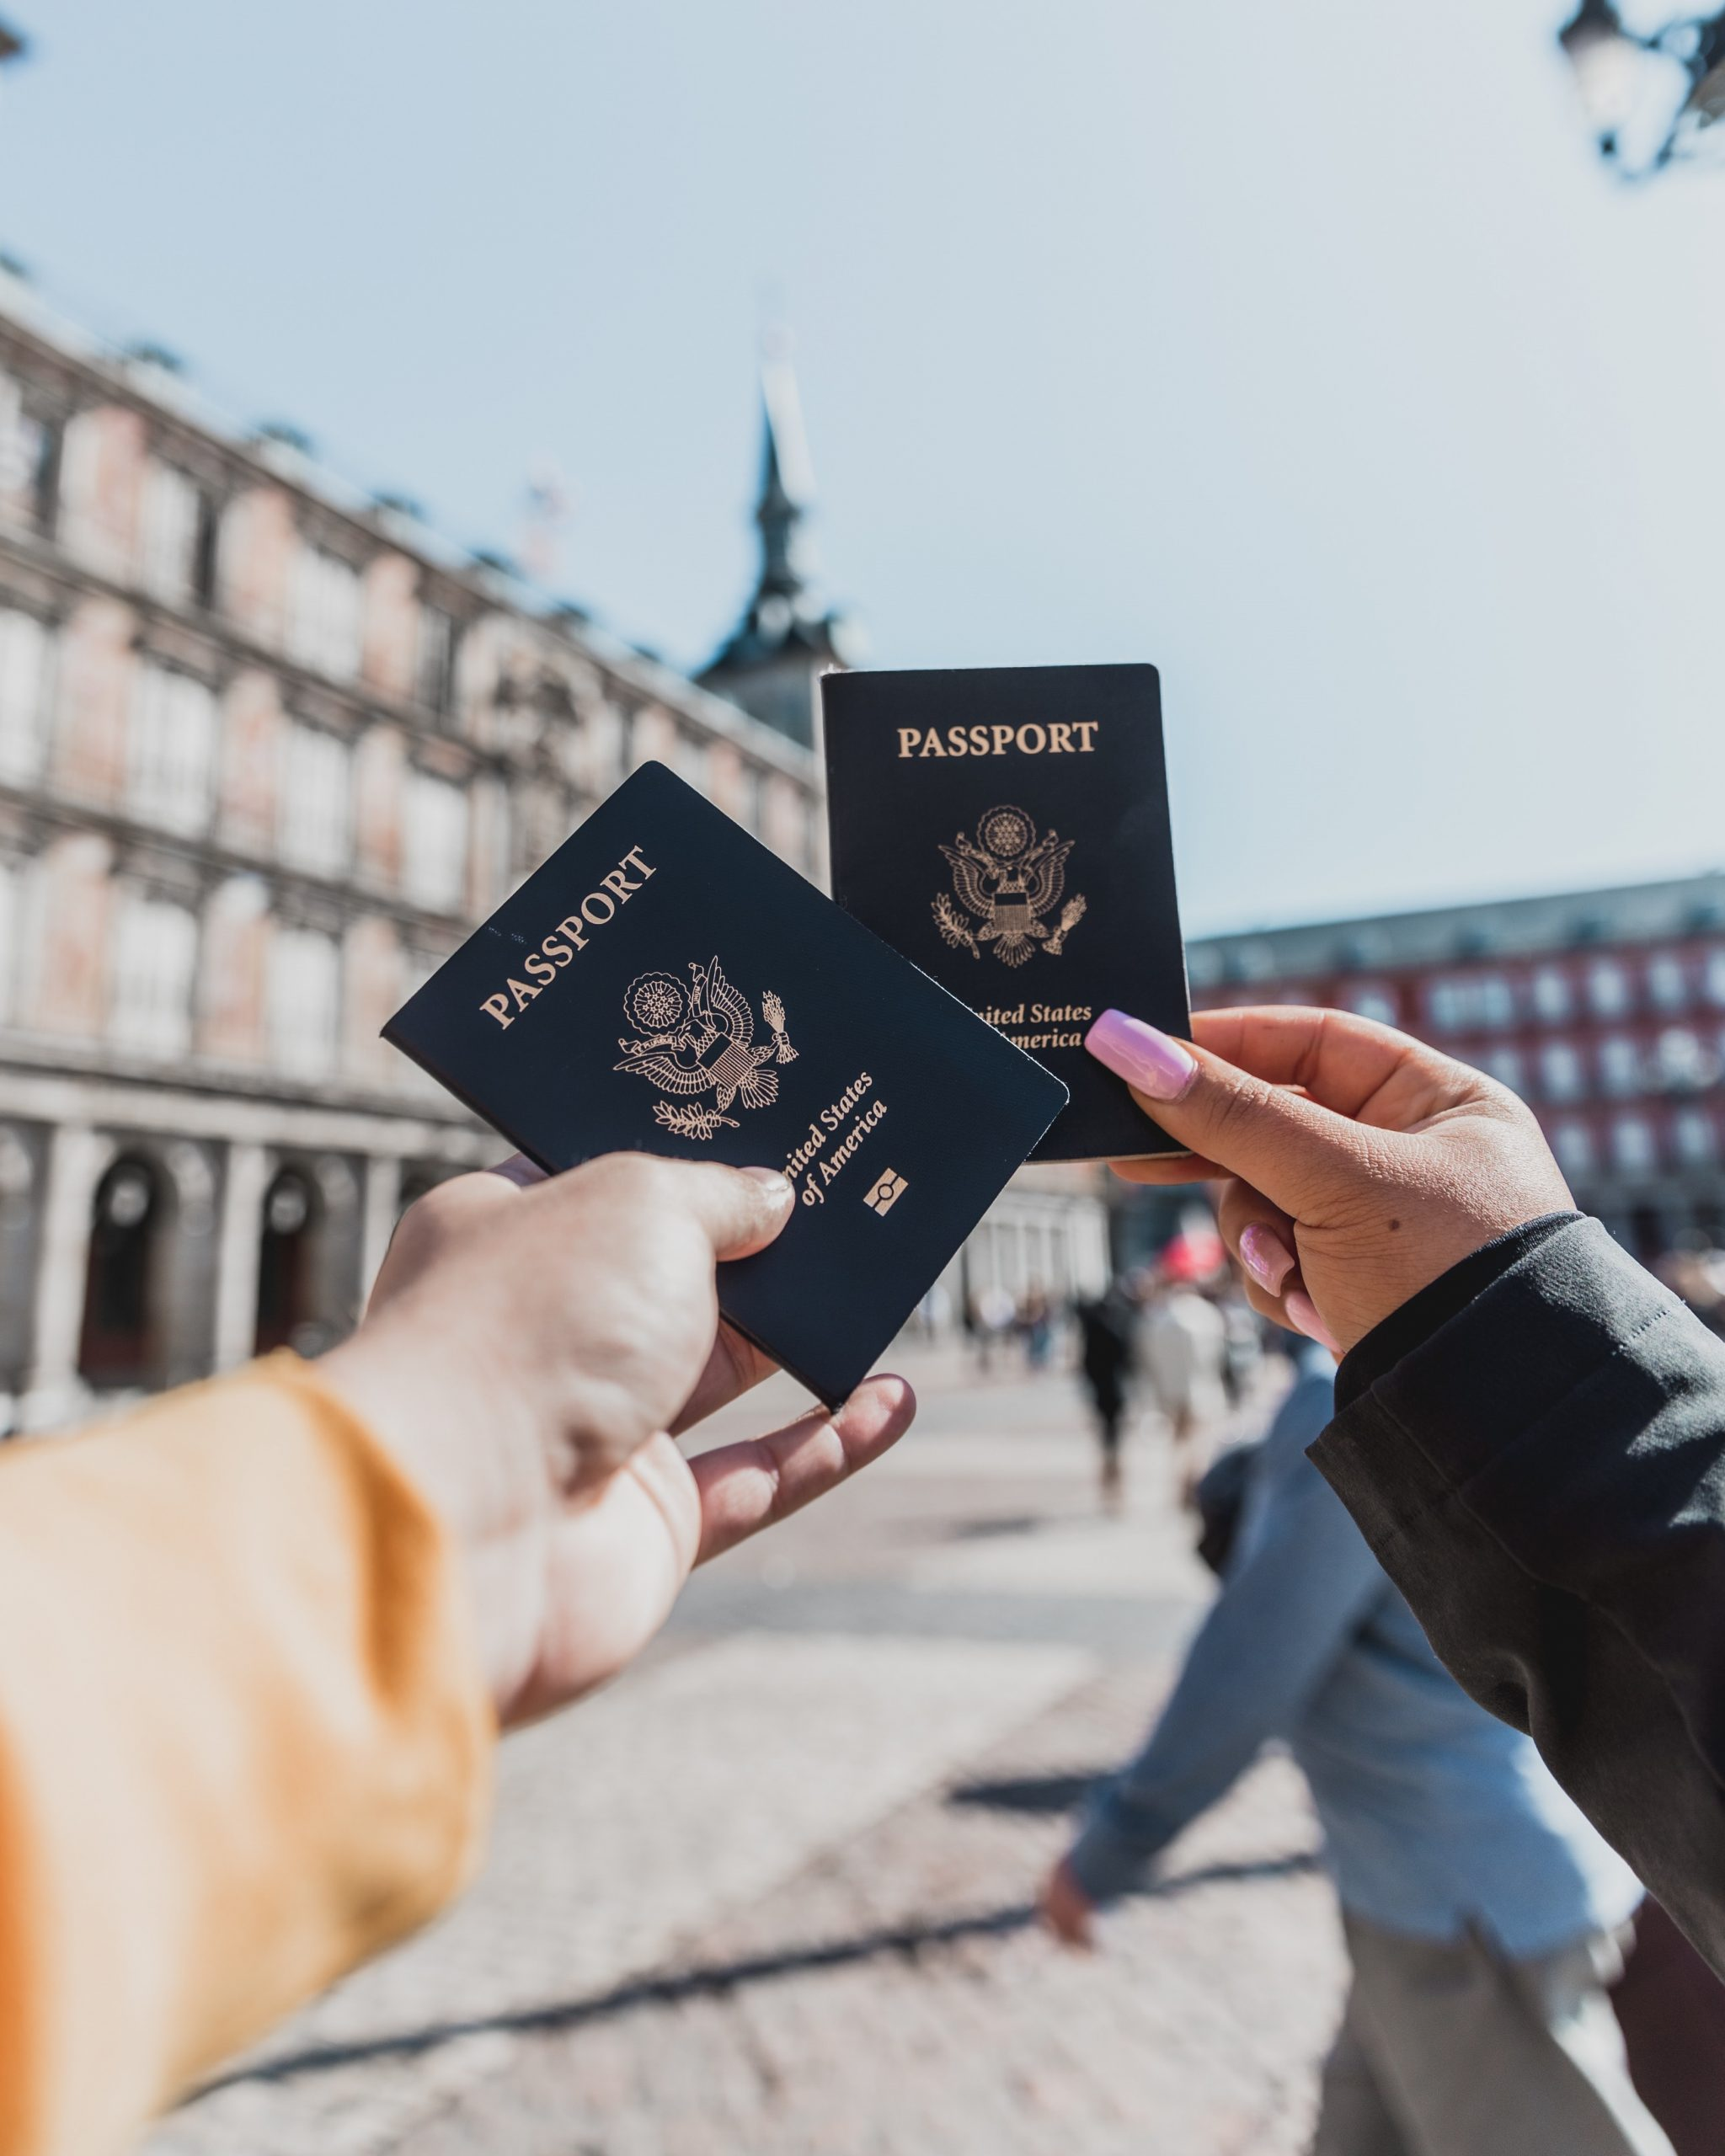 How To Attach a Photo to a Passport Application